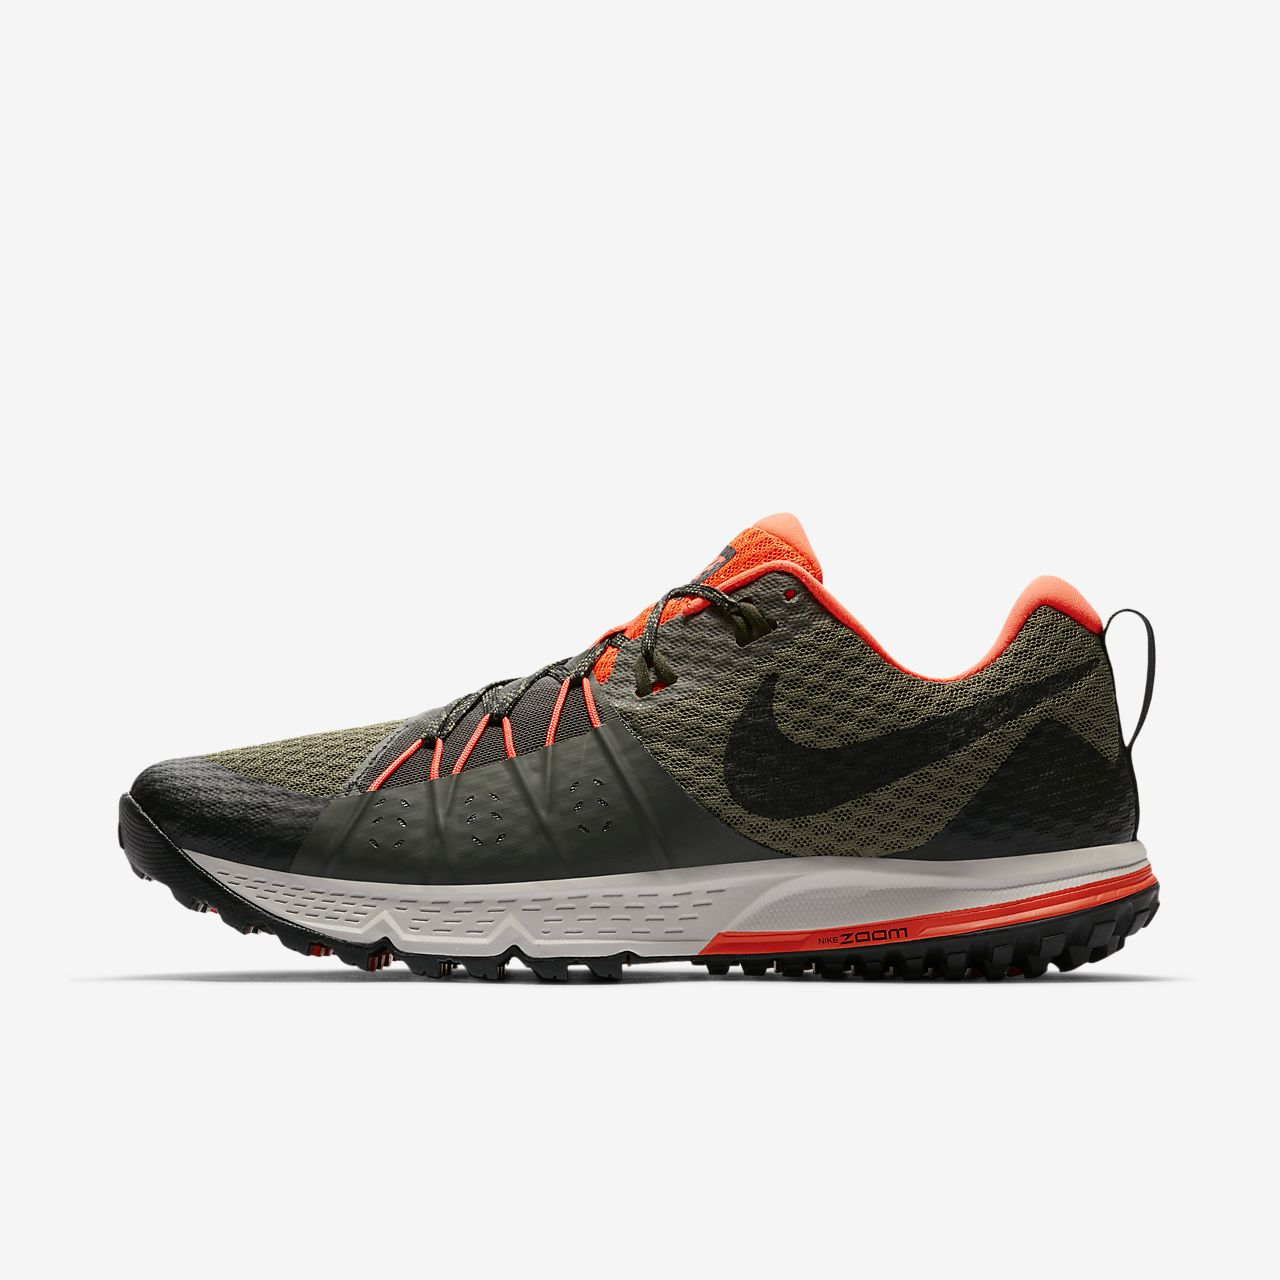 Latest Nike Zoom Wildhorse 4 Dark Grey/Wolf Grey/Black/Stealth For Men Outlet